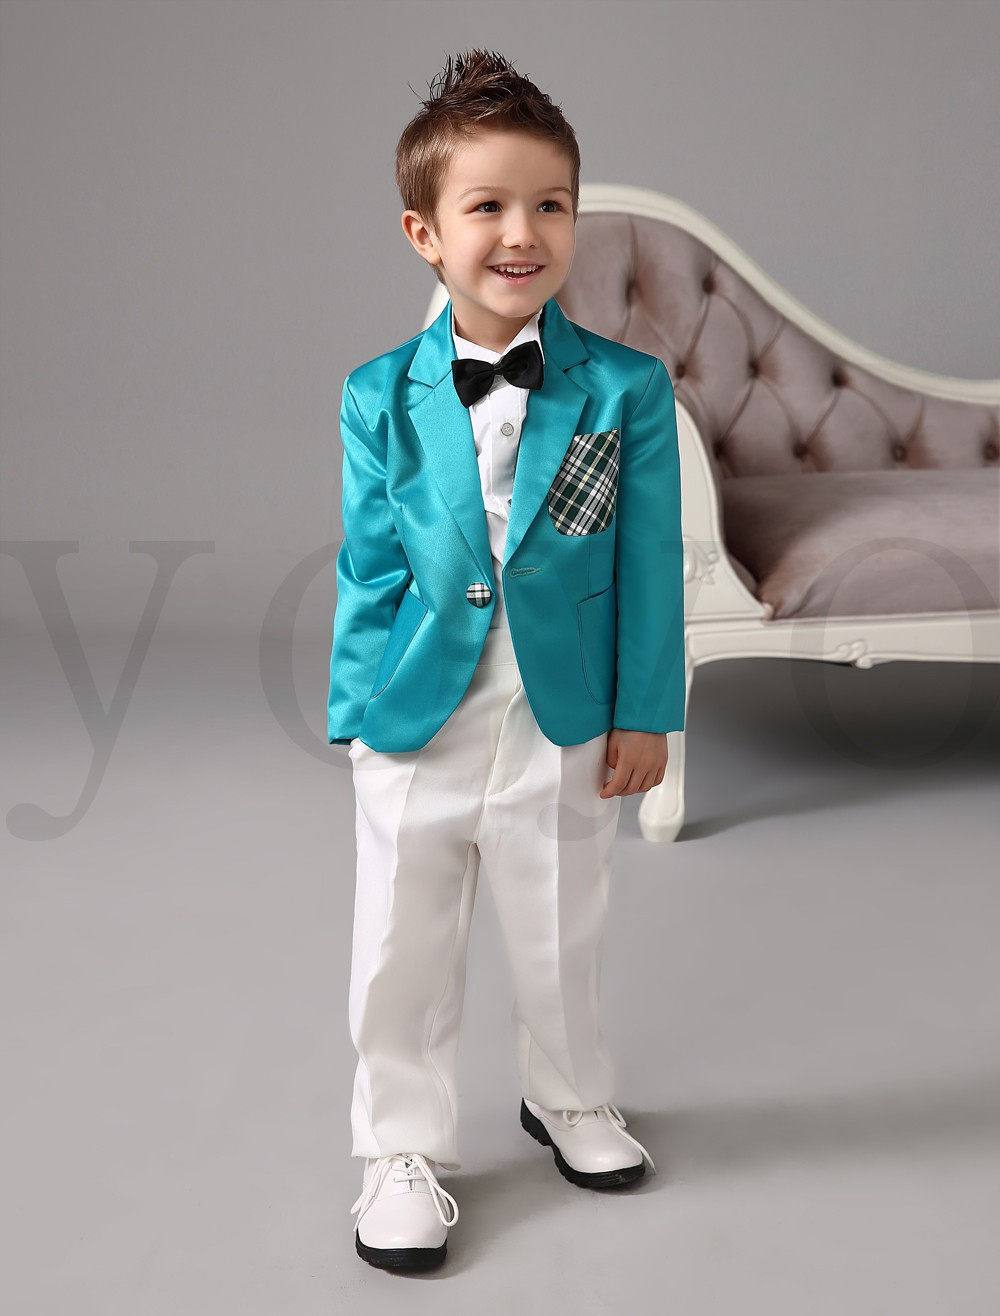 Find party dresses from a vast selection of Boys' Clothing Sizes 4 and Up. Get great deals on eBay!